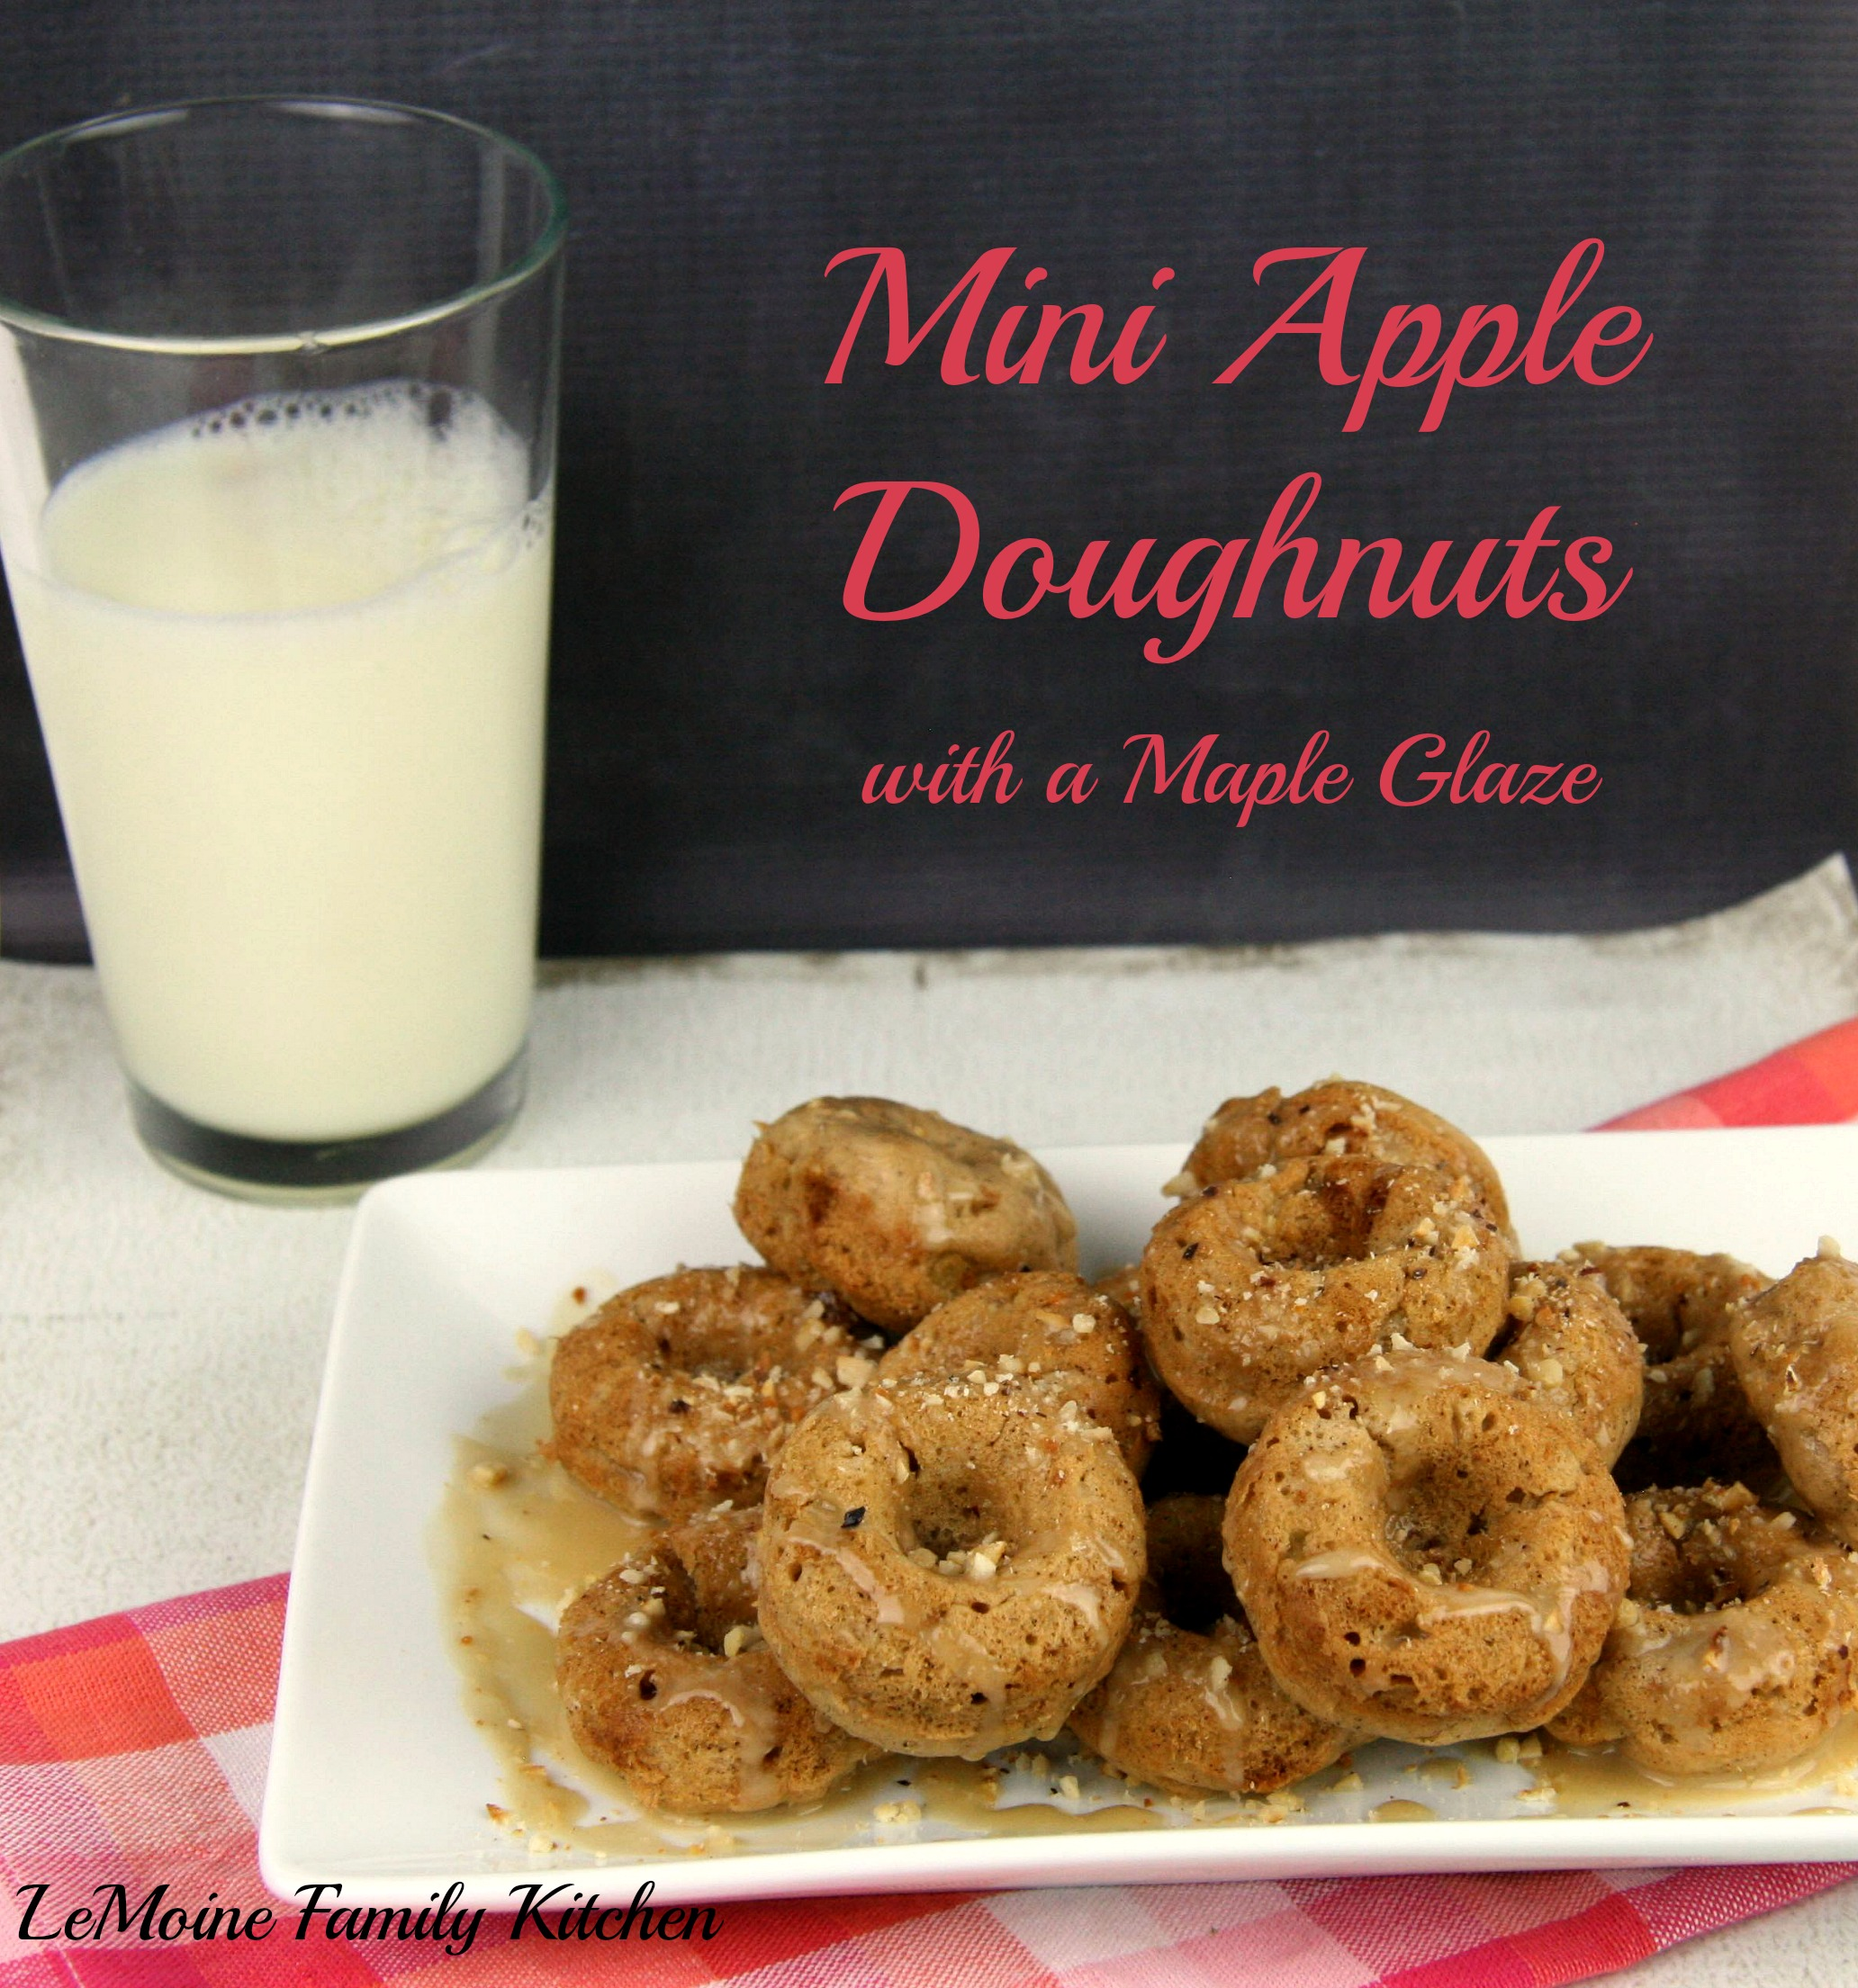 Mini Apple Doughnuts with a Maple Glaze